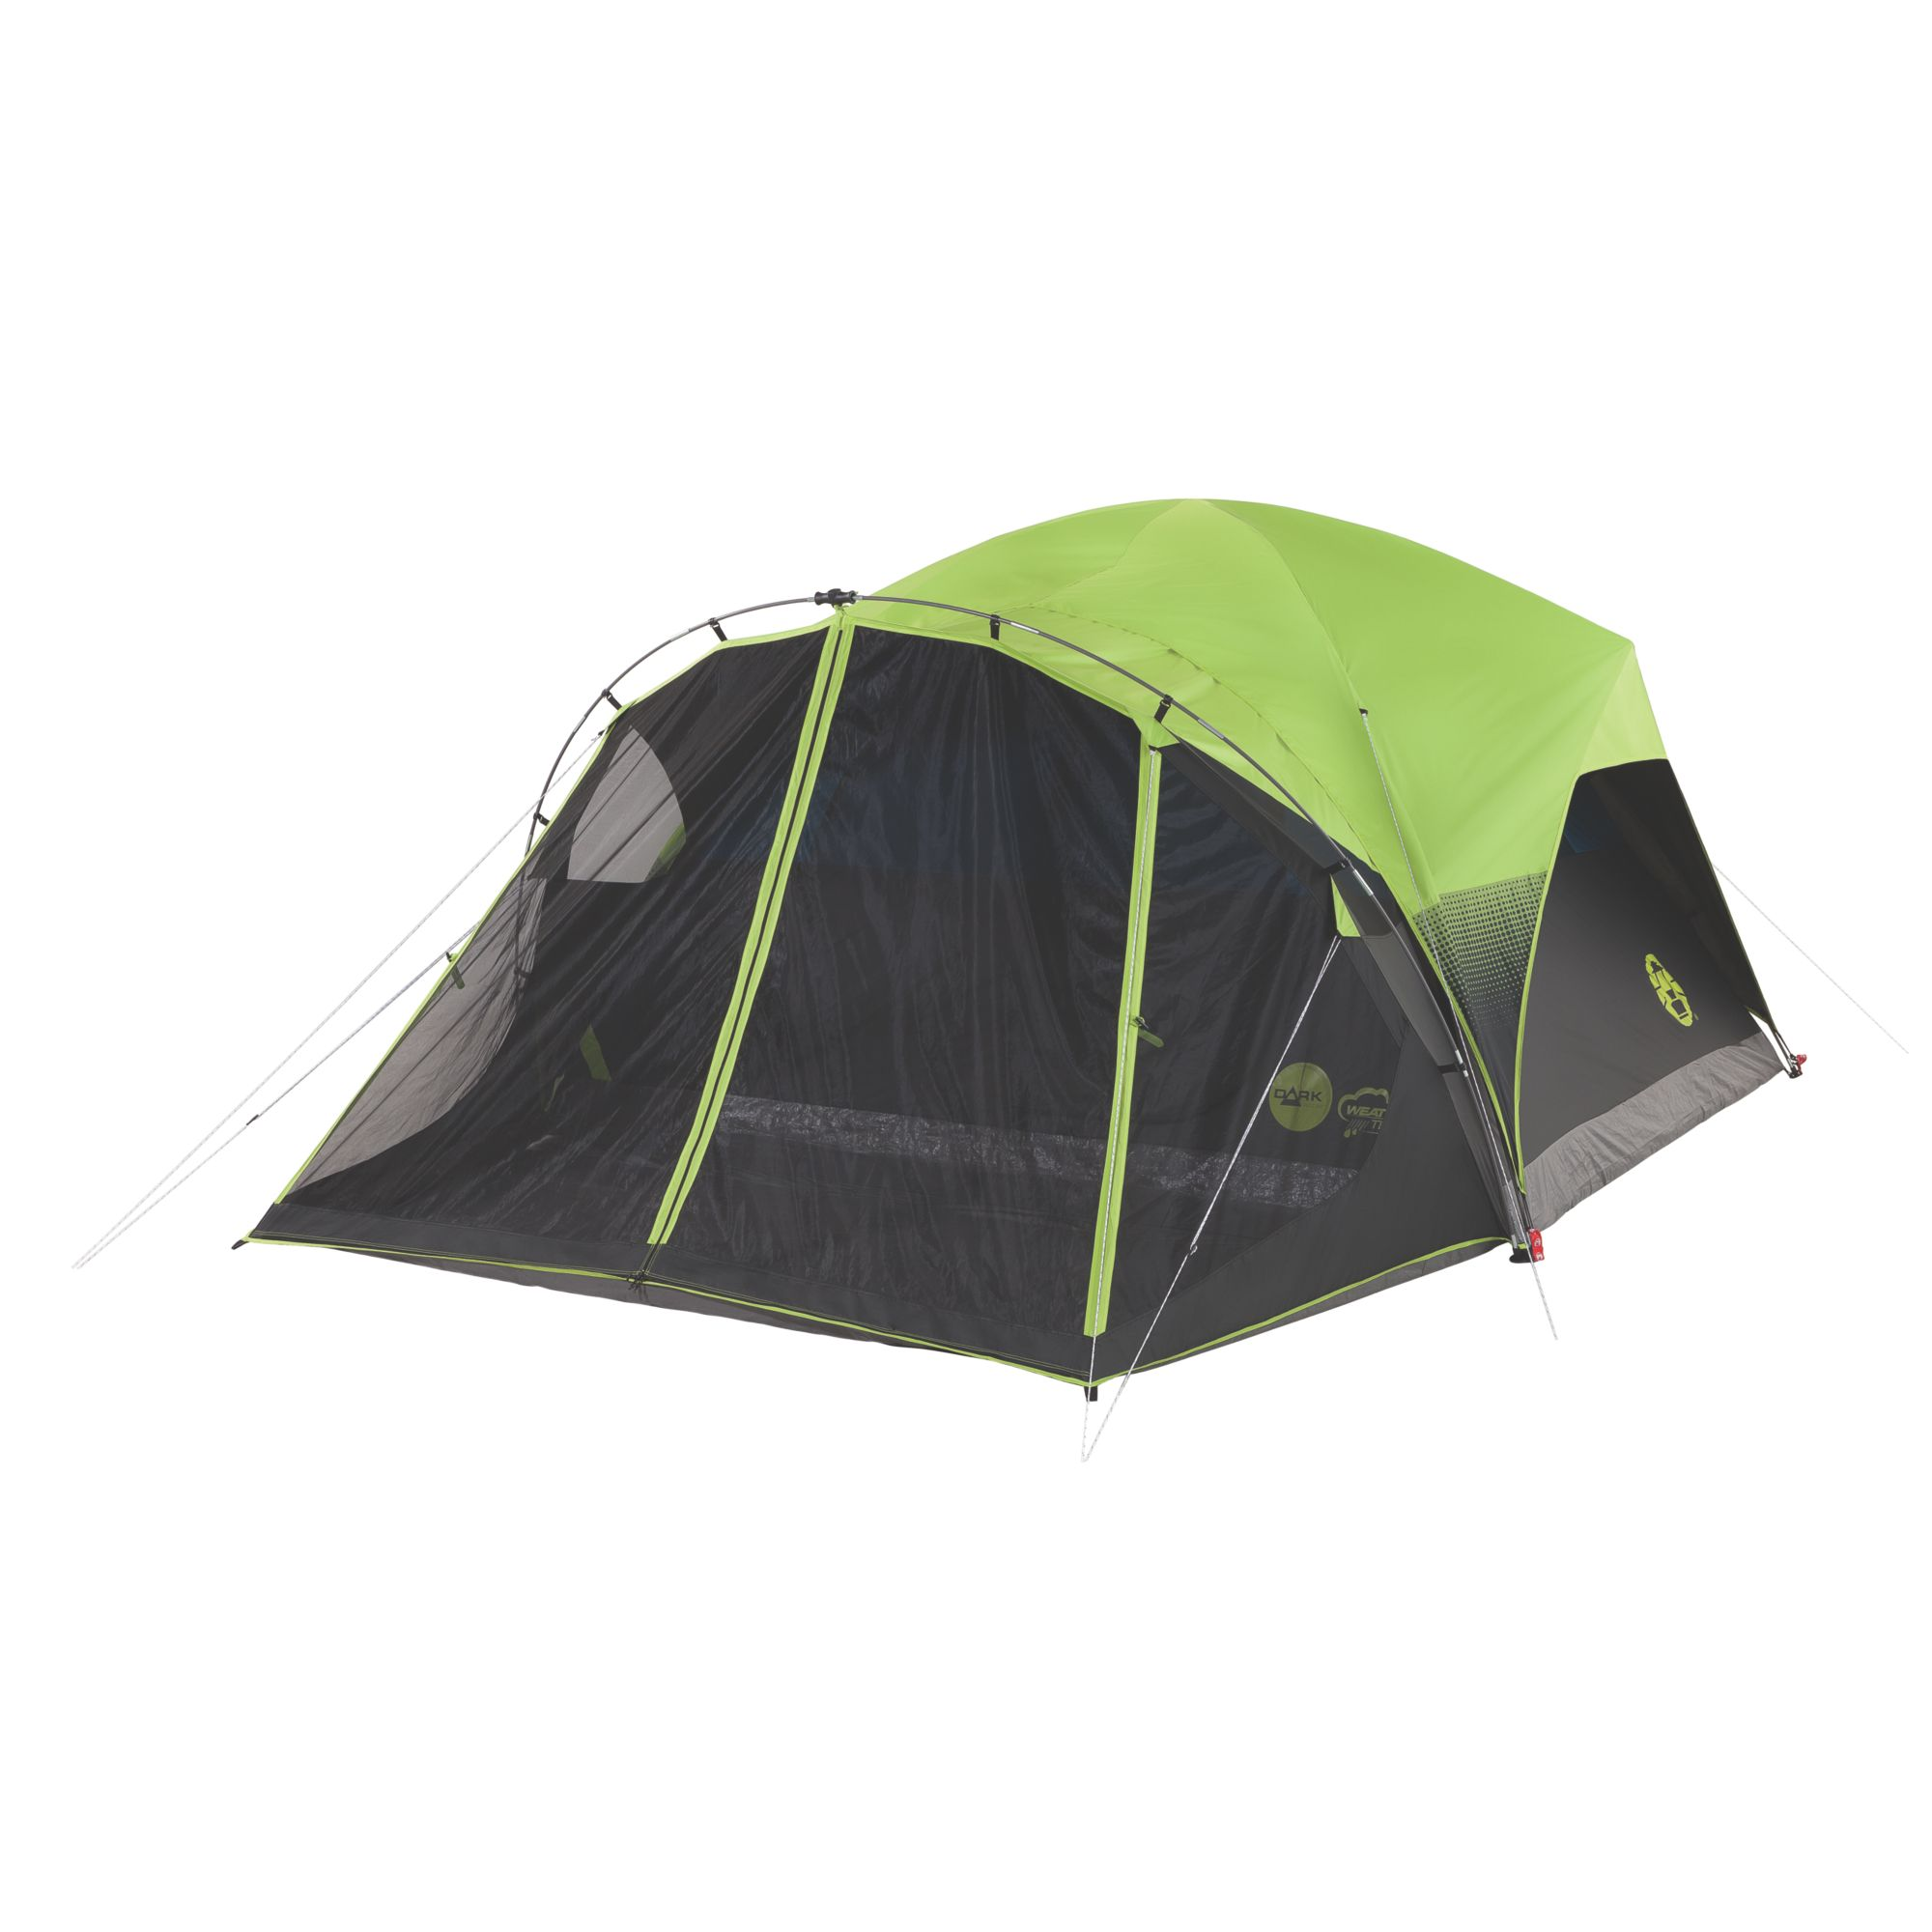 Carlsbad Fast Pitch 6 Person Dark Room Tent With Screen Room Coleman